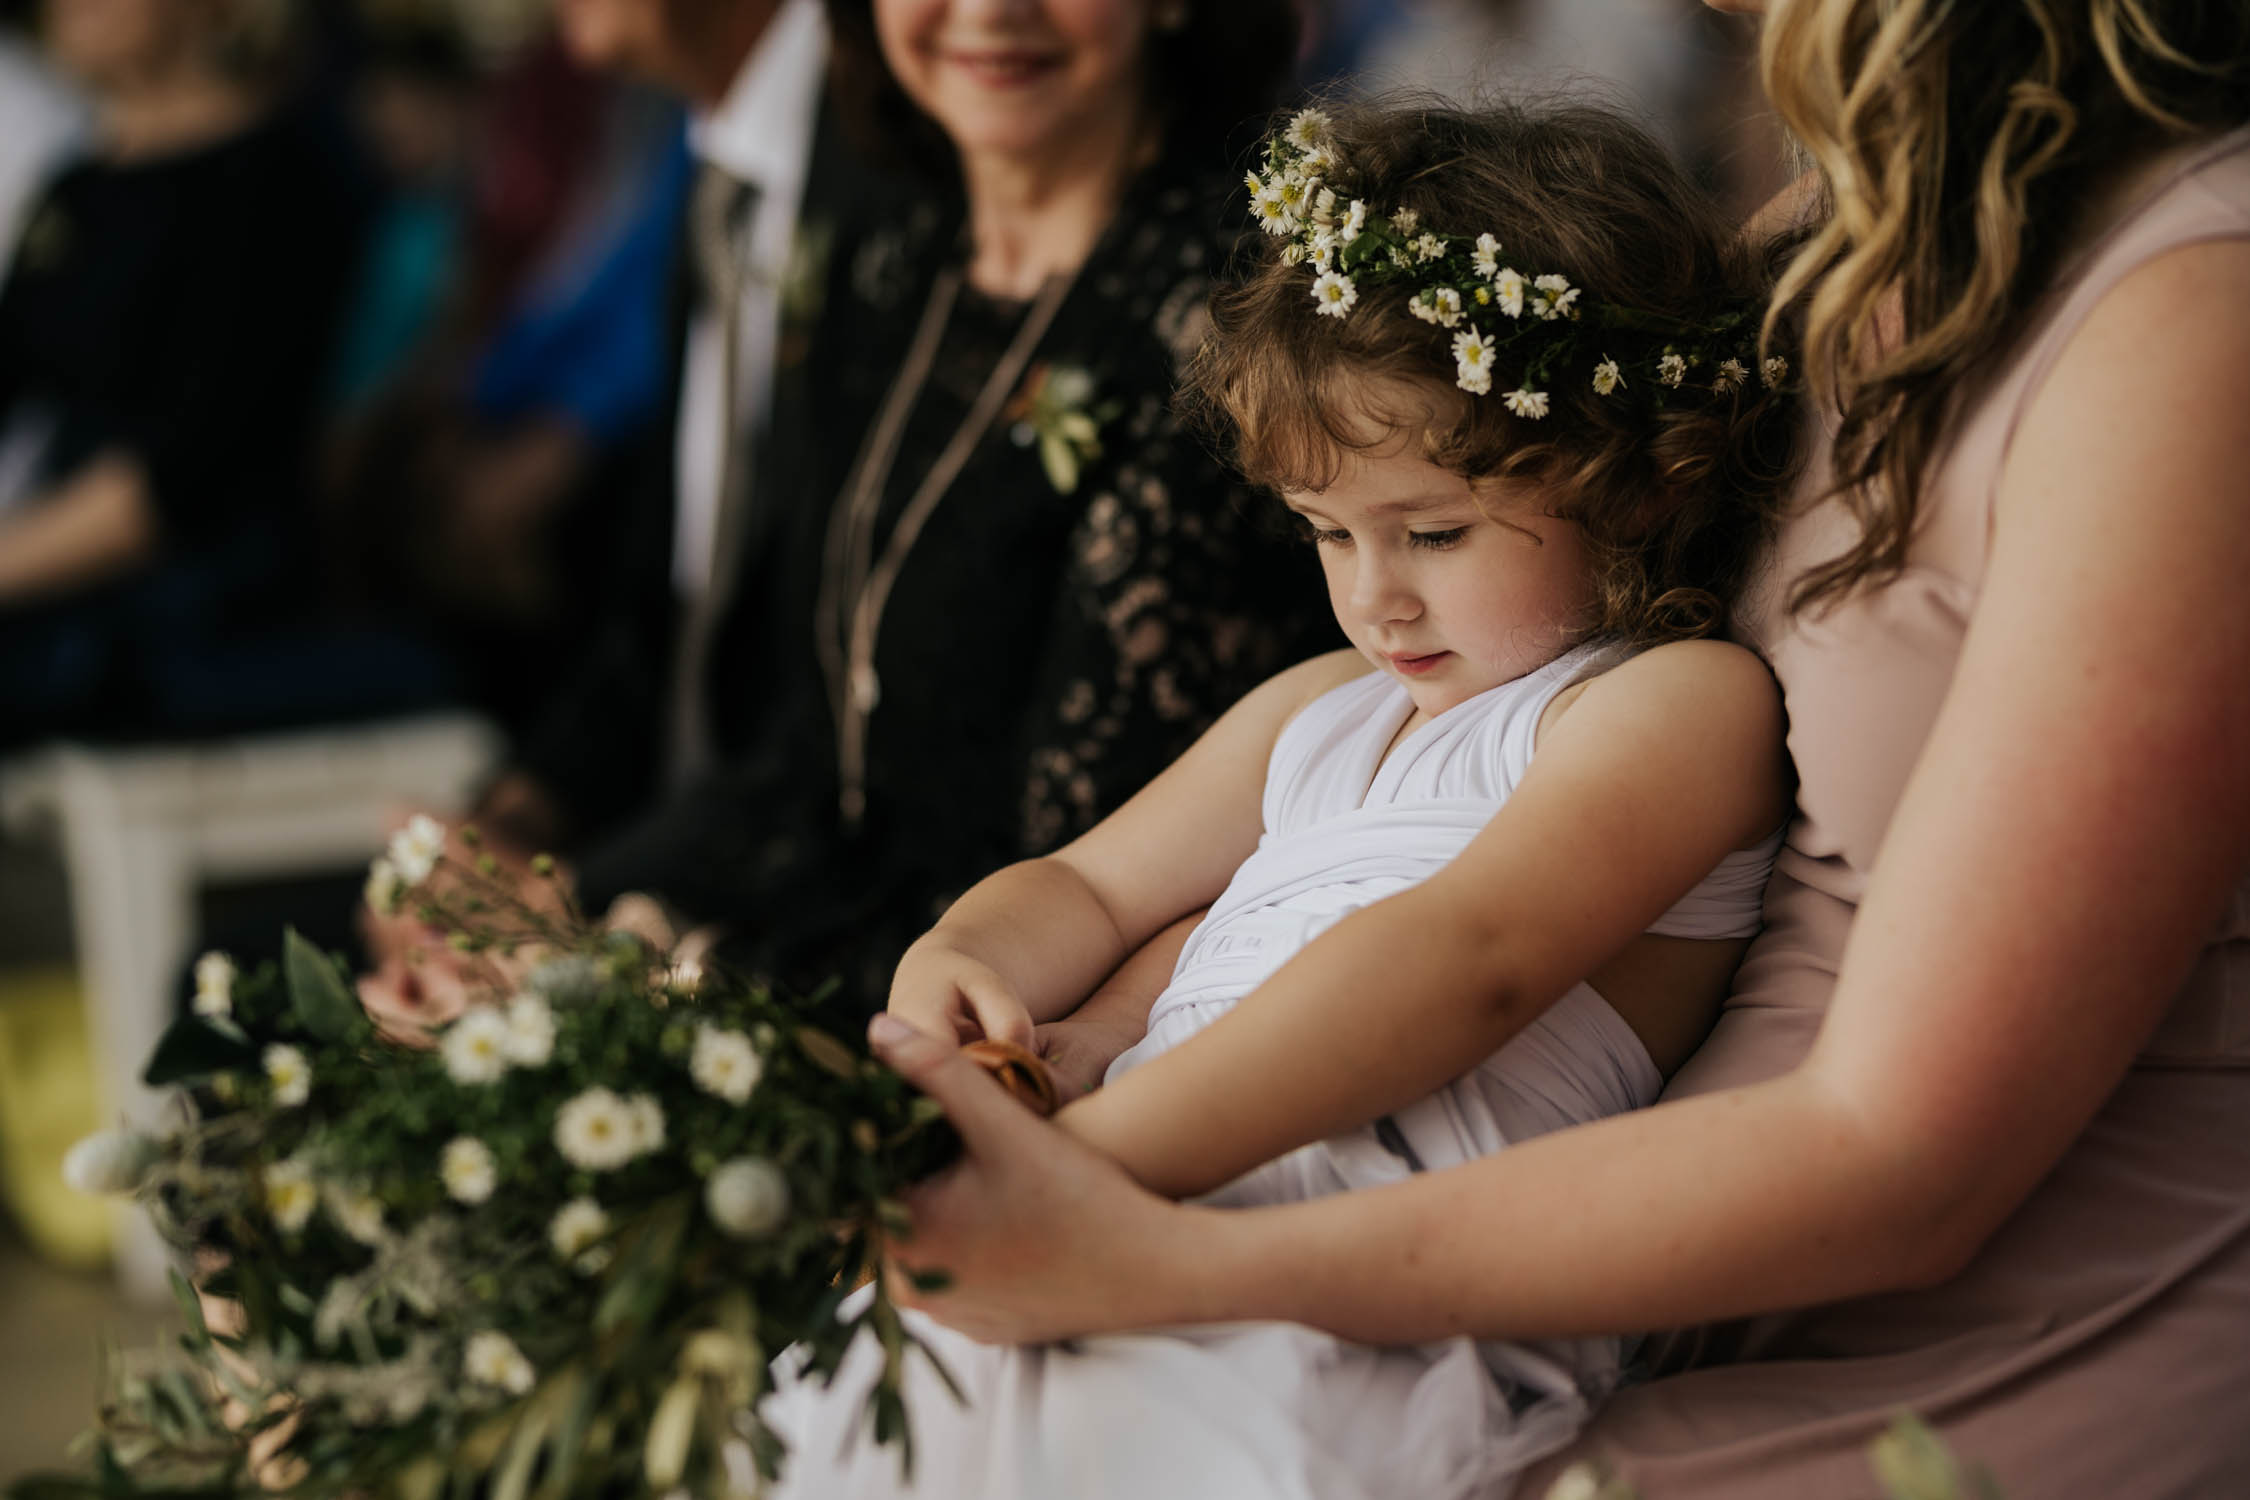 Ideas for ethereal and comfortable flower girl outfits